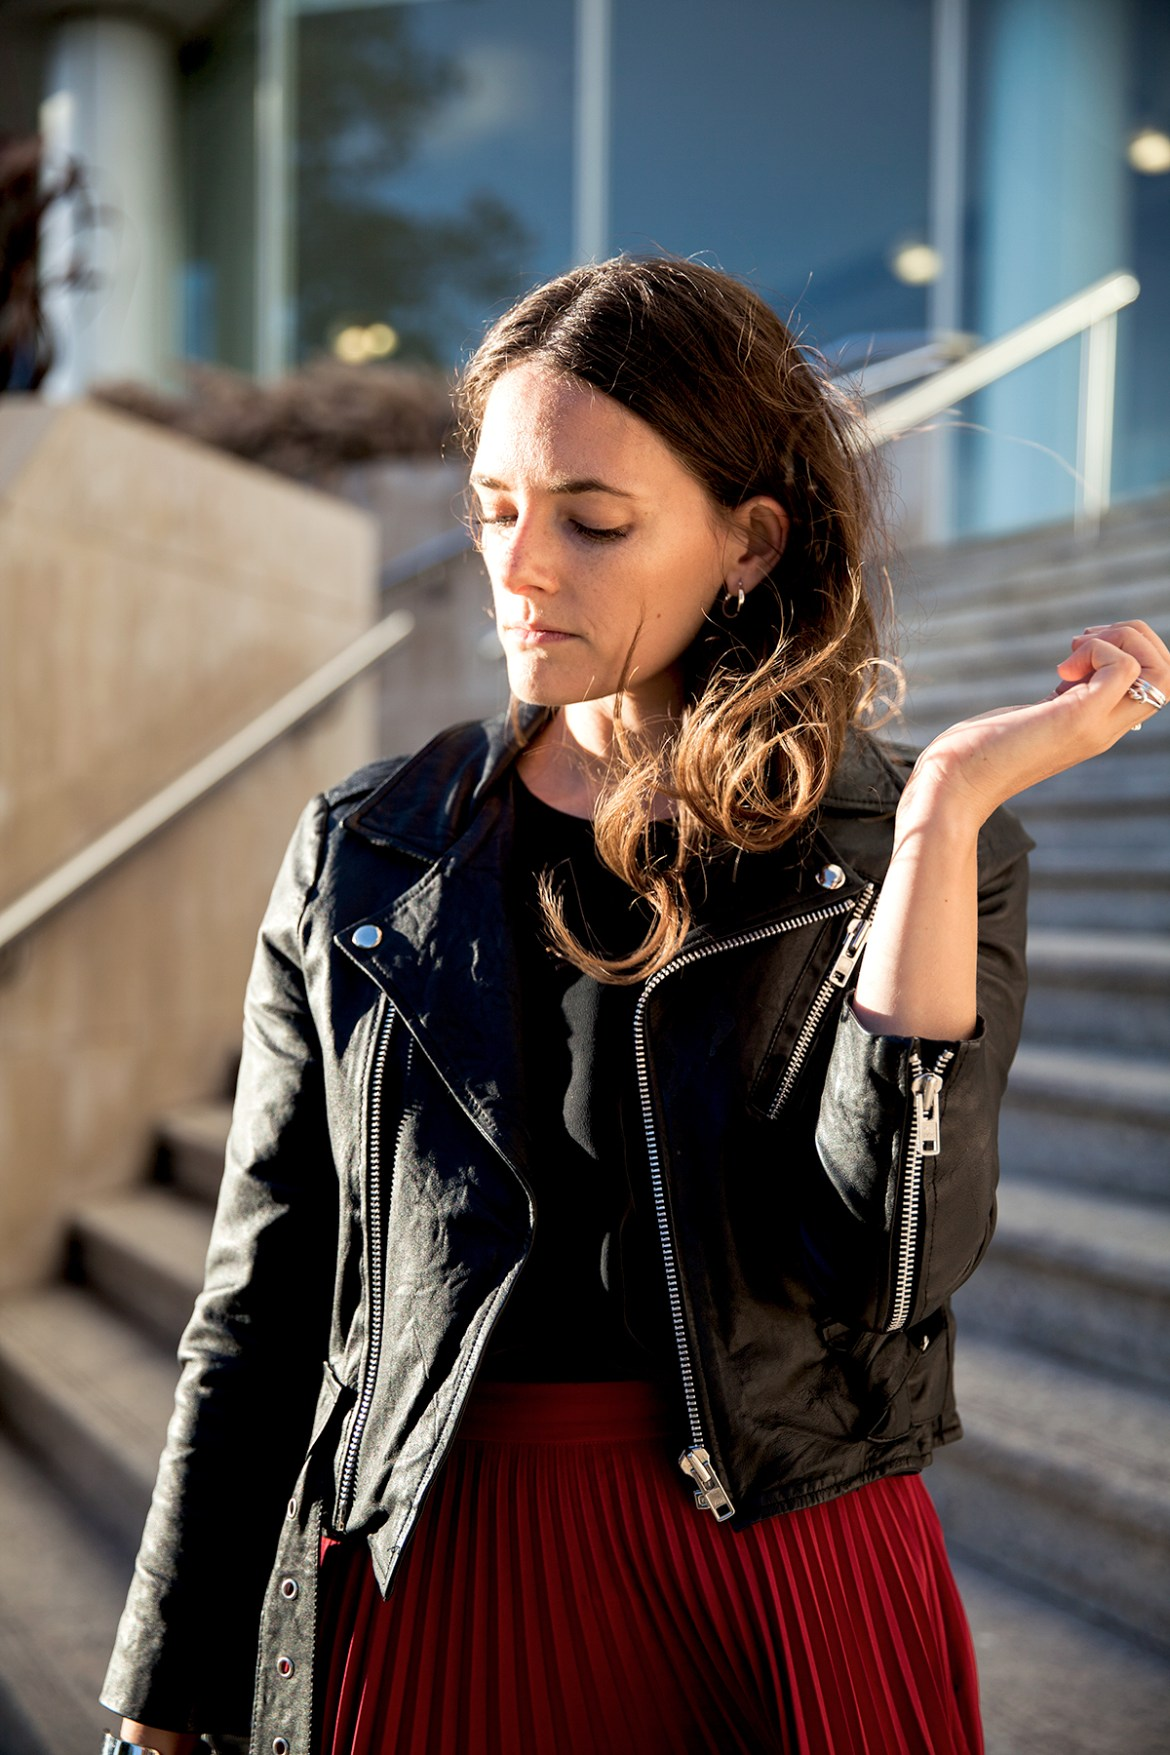 INSPIRING WIT STREET STYLE blog from Perth wearing leather moto jacket